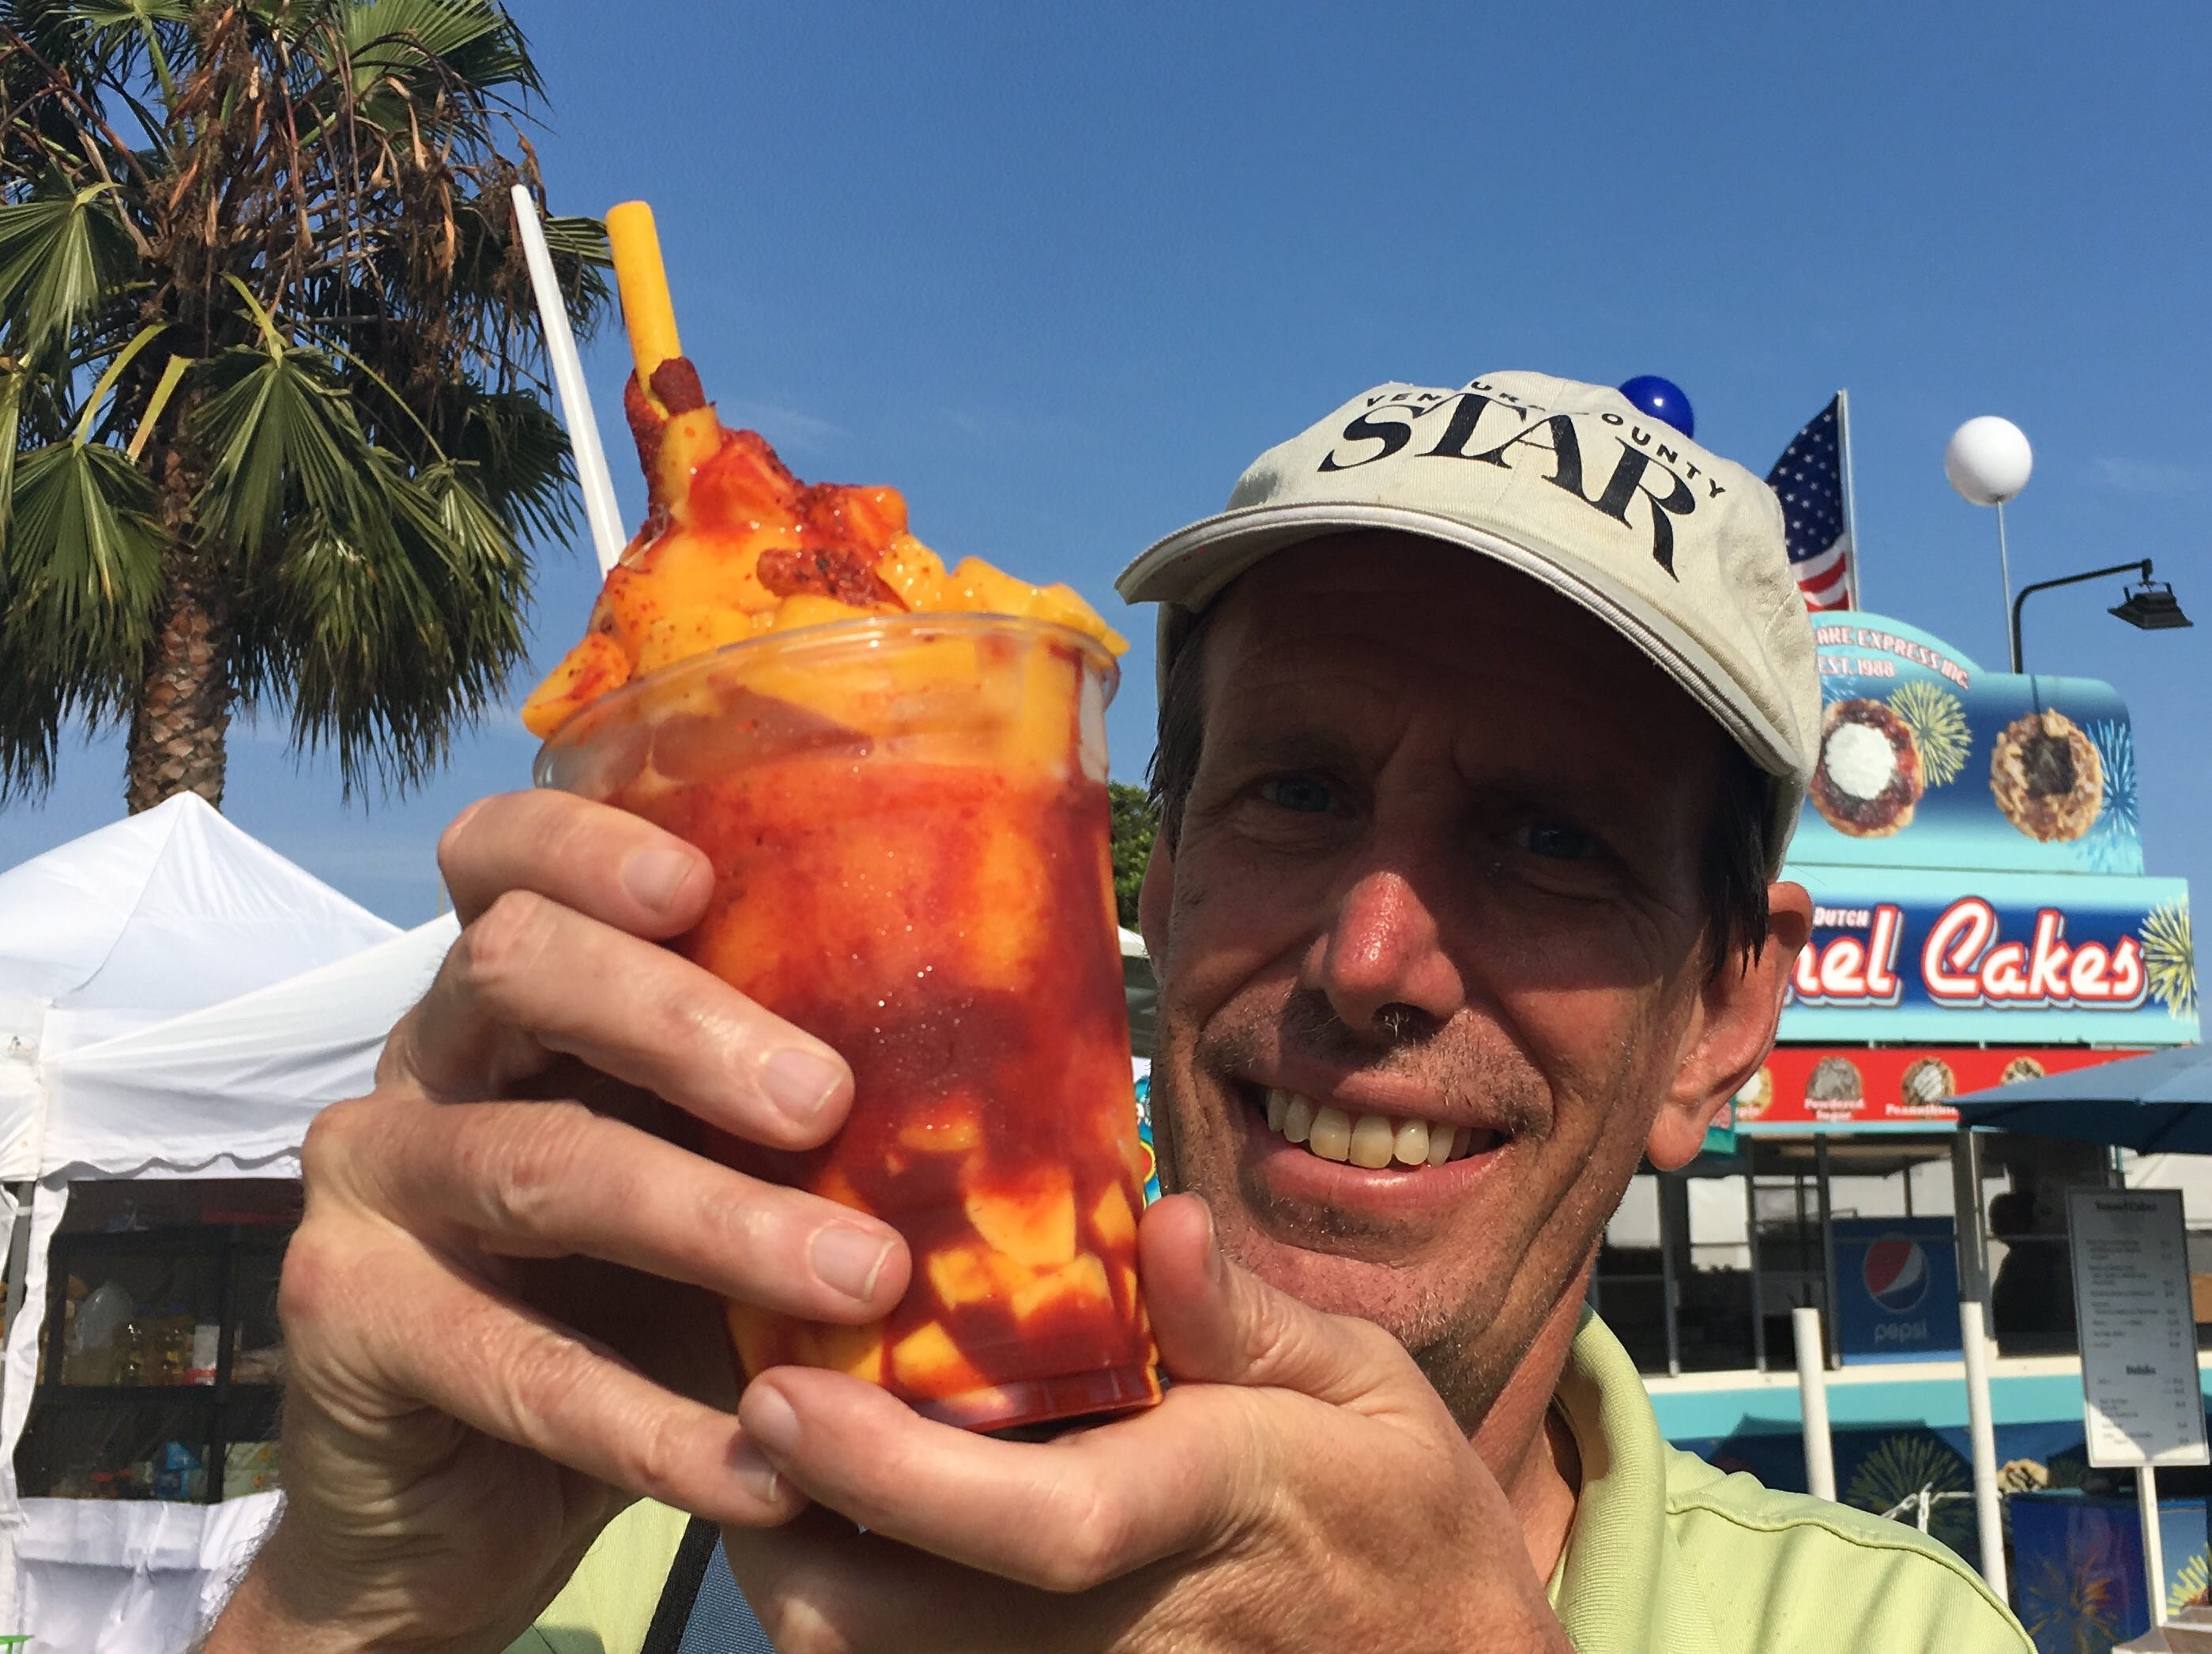 A Mangonada with a huge scoop of sorbet covered with chunks of mango and flavored with sweet, spicy chamoy sauce. It includes a big yellow straw coated with chili seasoning.